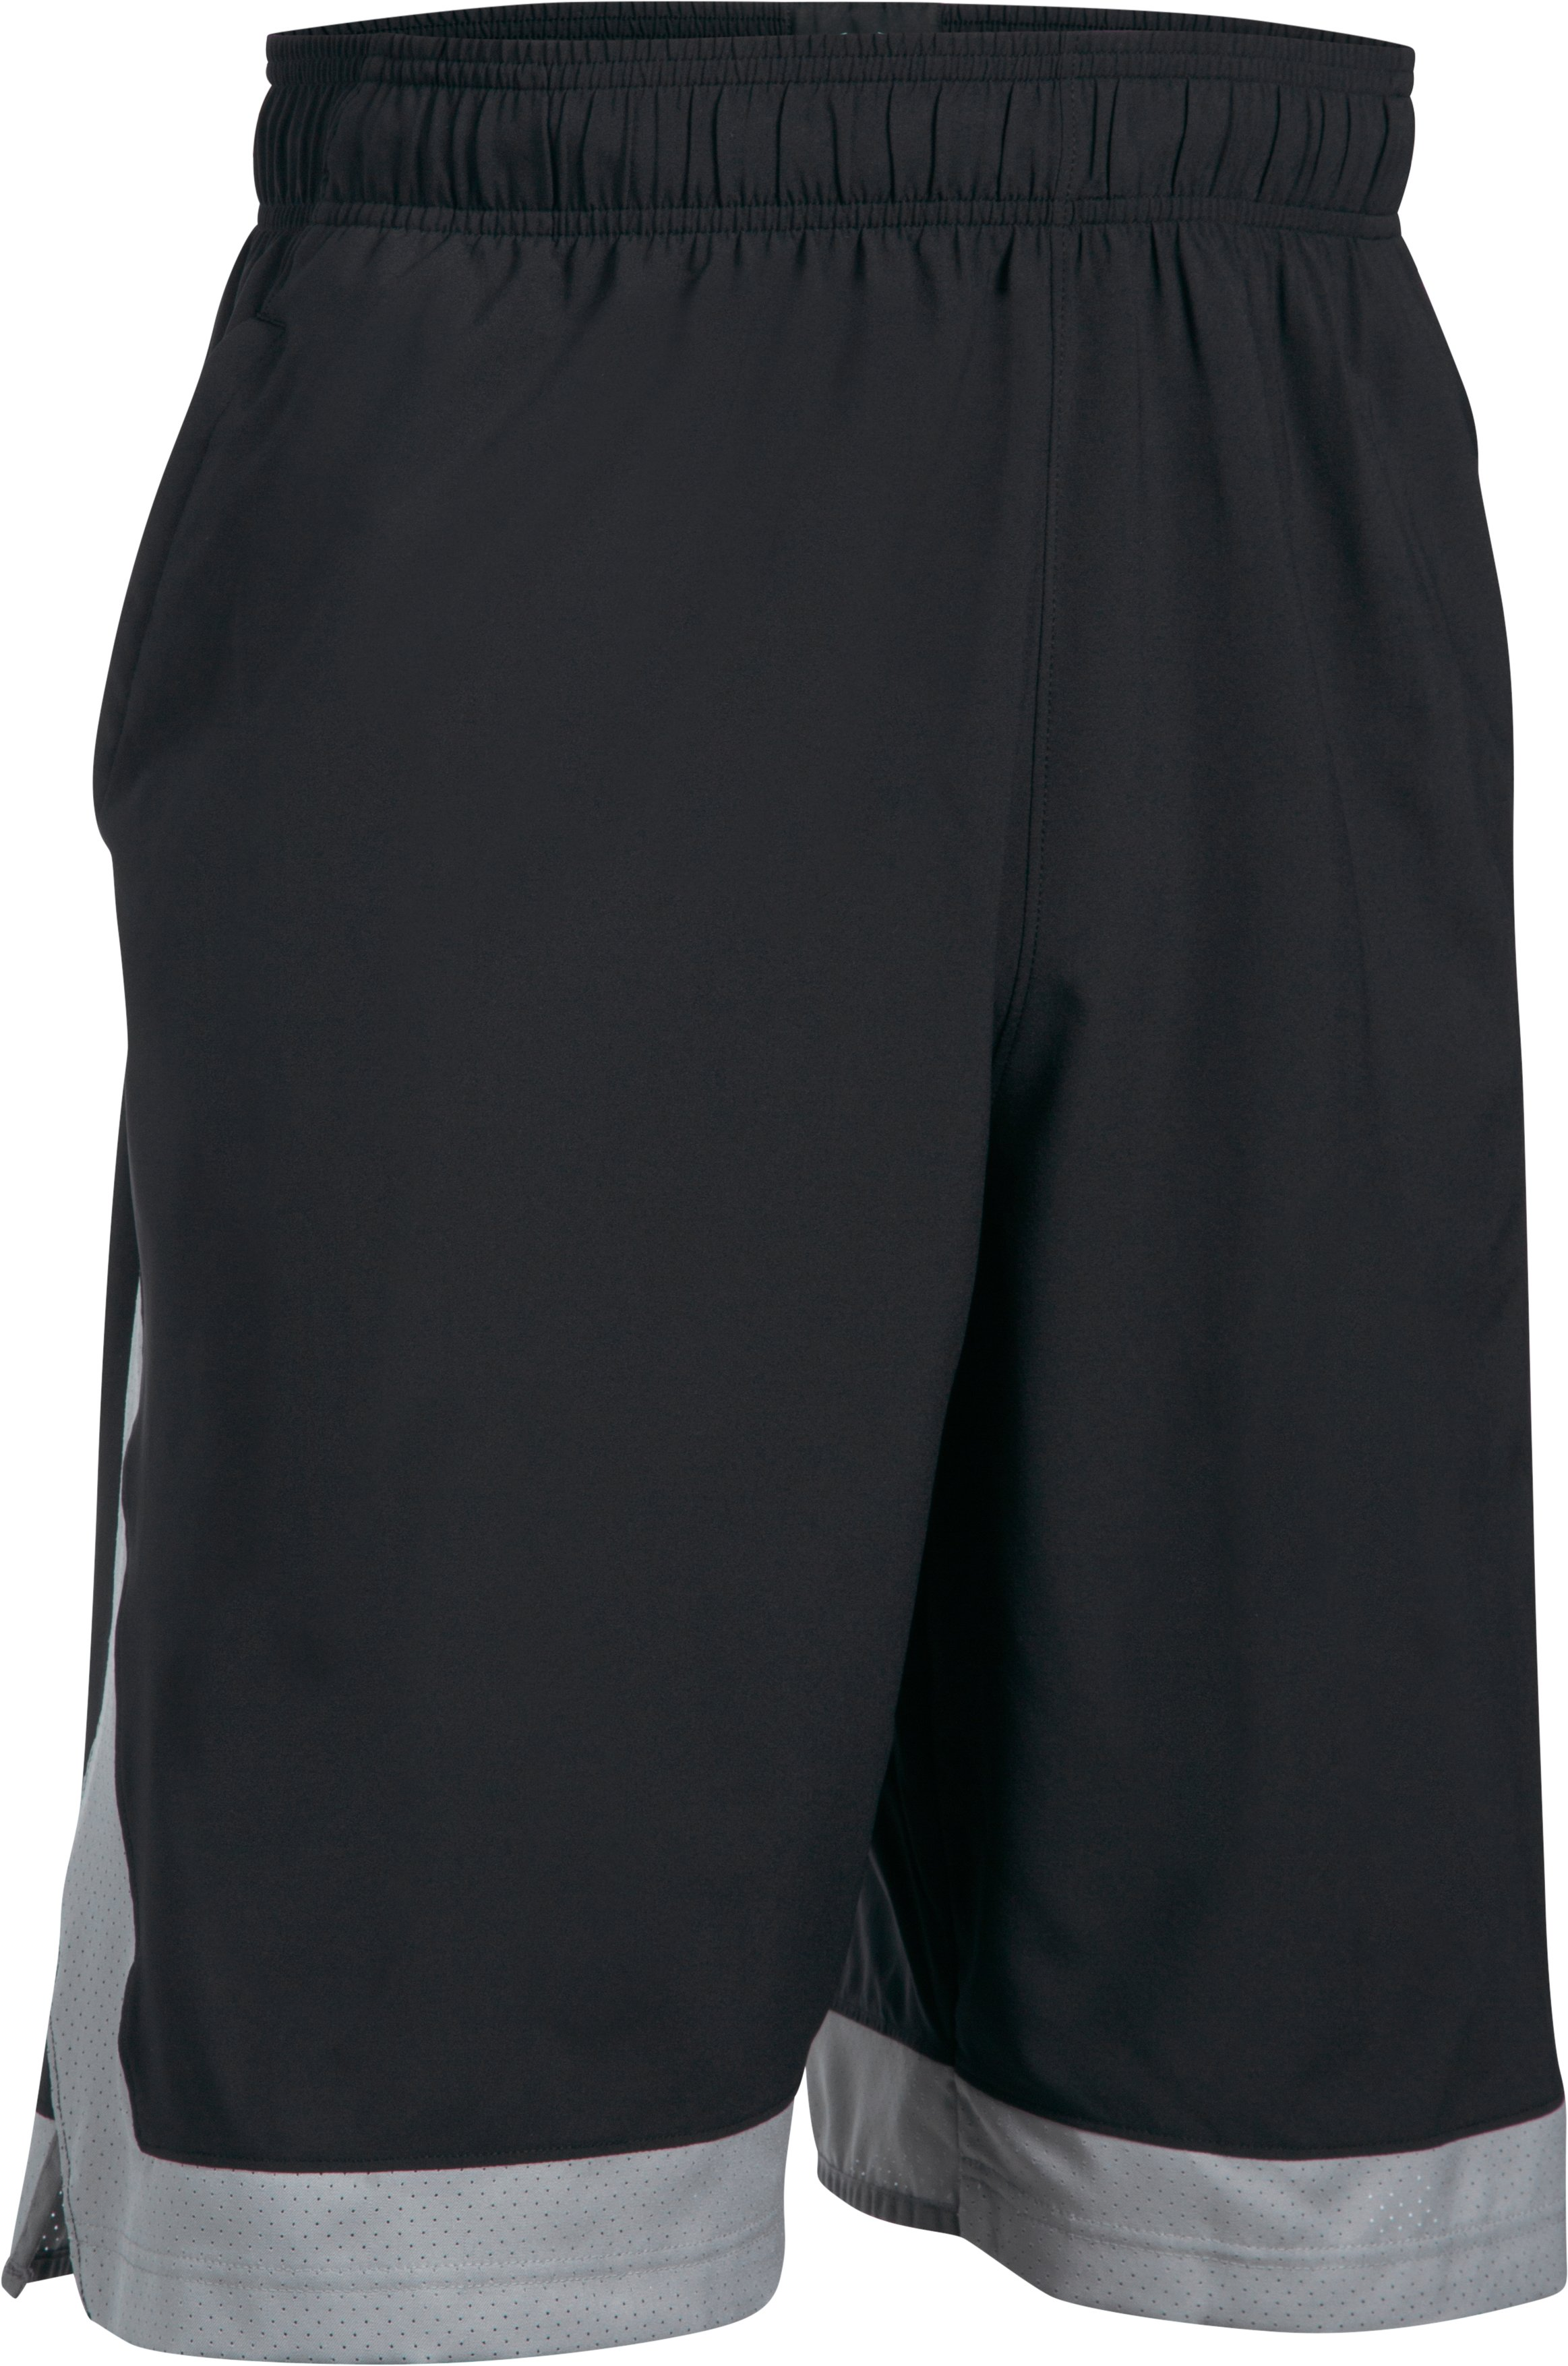 "Men's SC30 Hypersonic 9"" Shorts, Black"